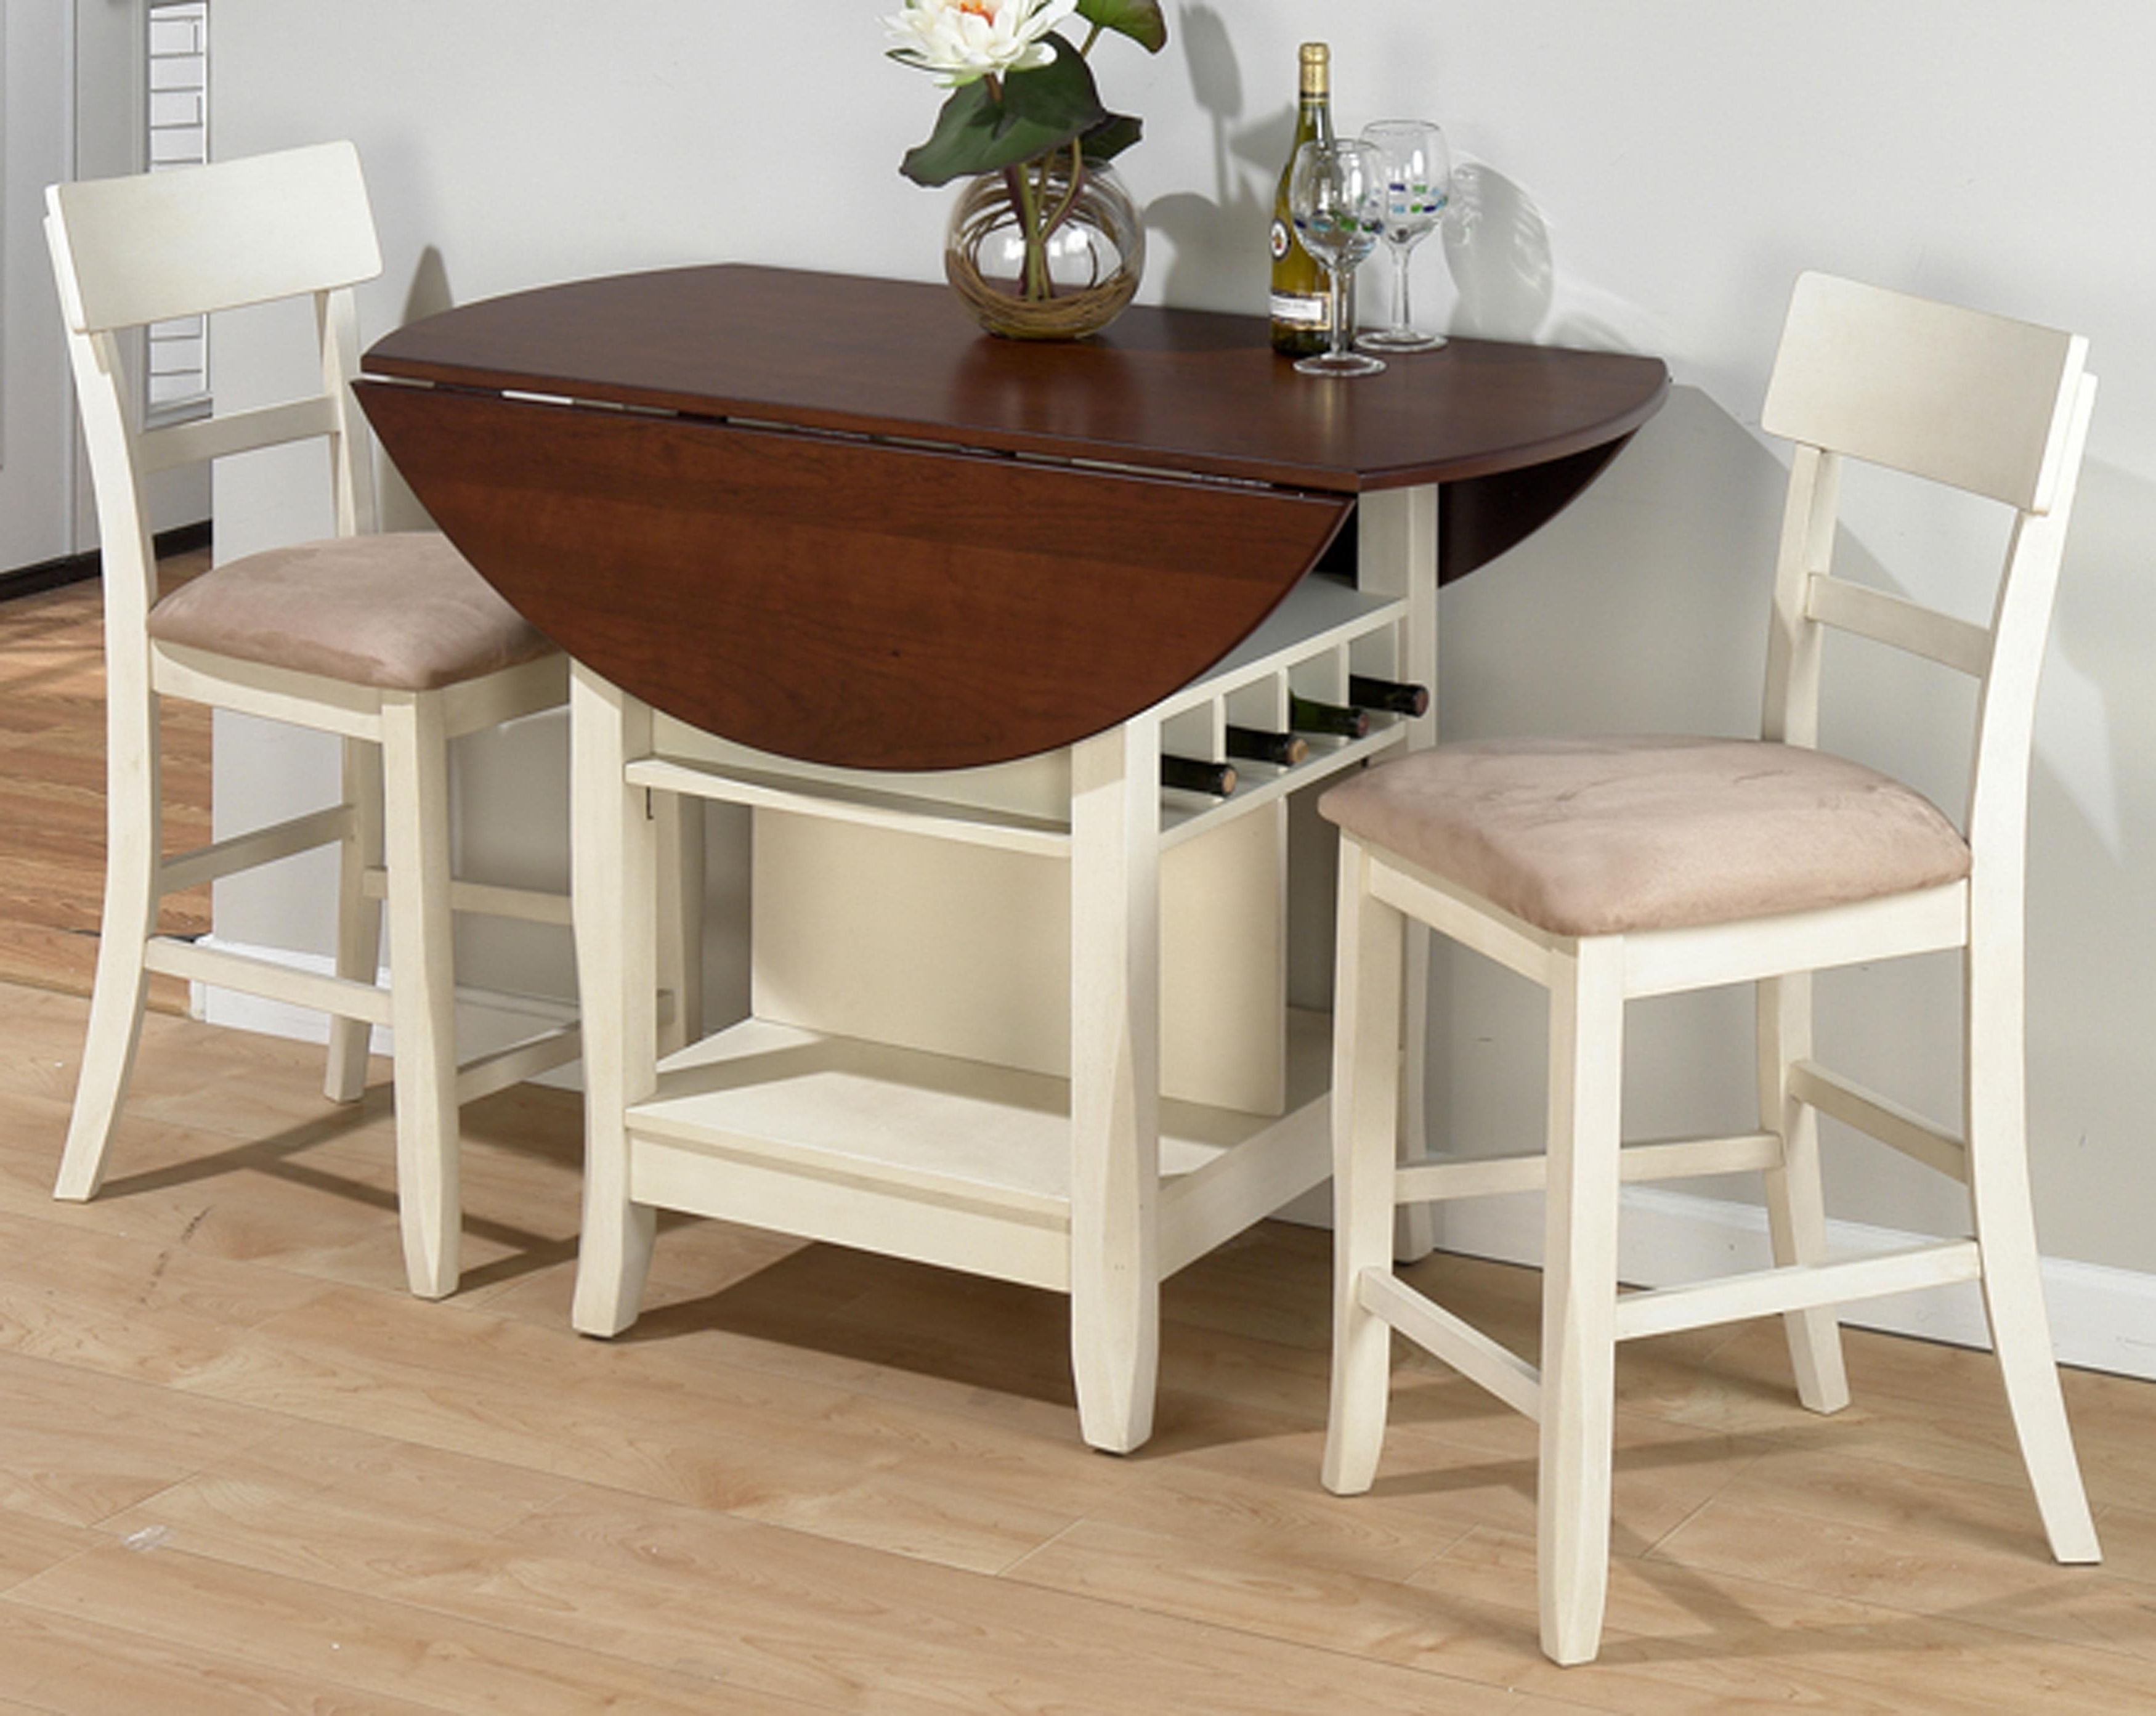 Round Half Moon Dining Tables Within Favorite Half Moon Kitchen Table Lovely Half Moon Dining Table Image (View 4 of 25)